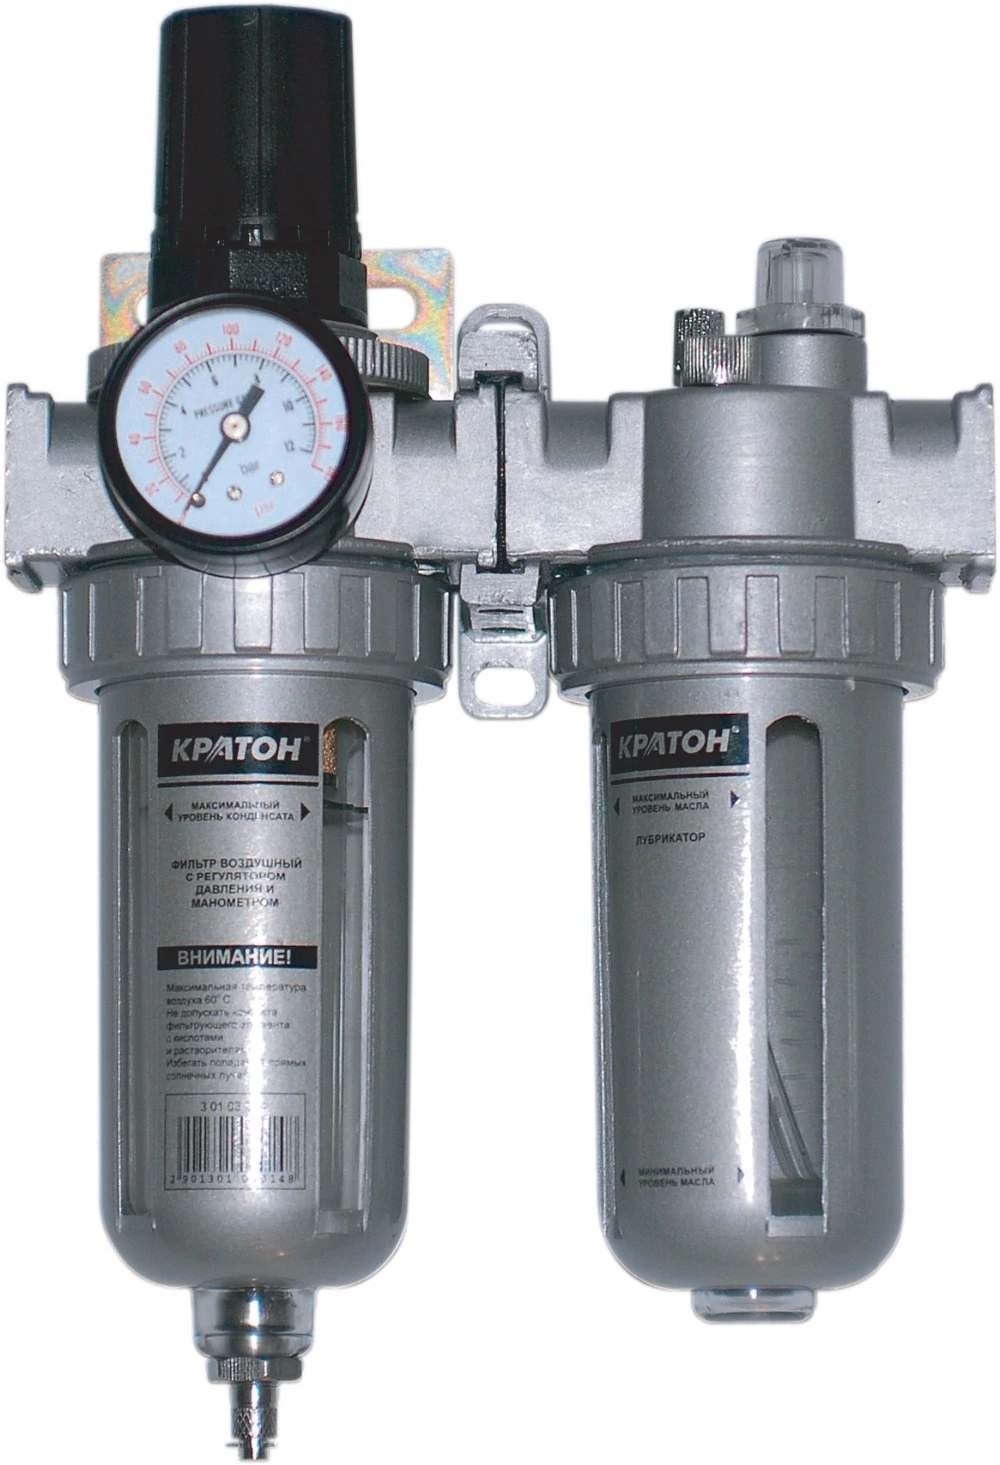 Air filter with pressure regulator manometer and lubricator Kraton стоимость